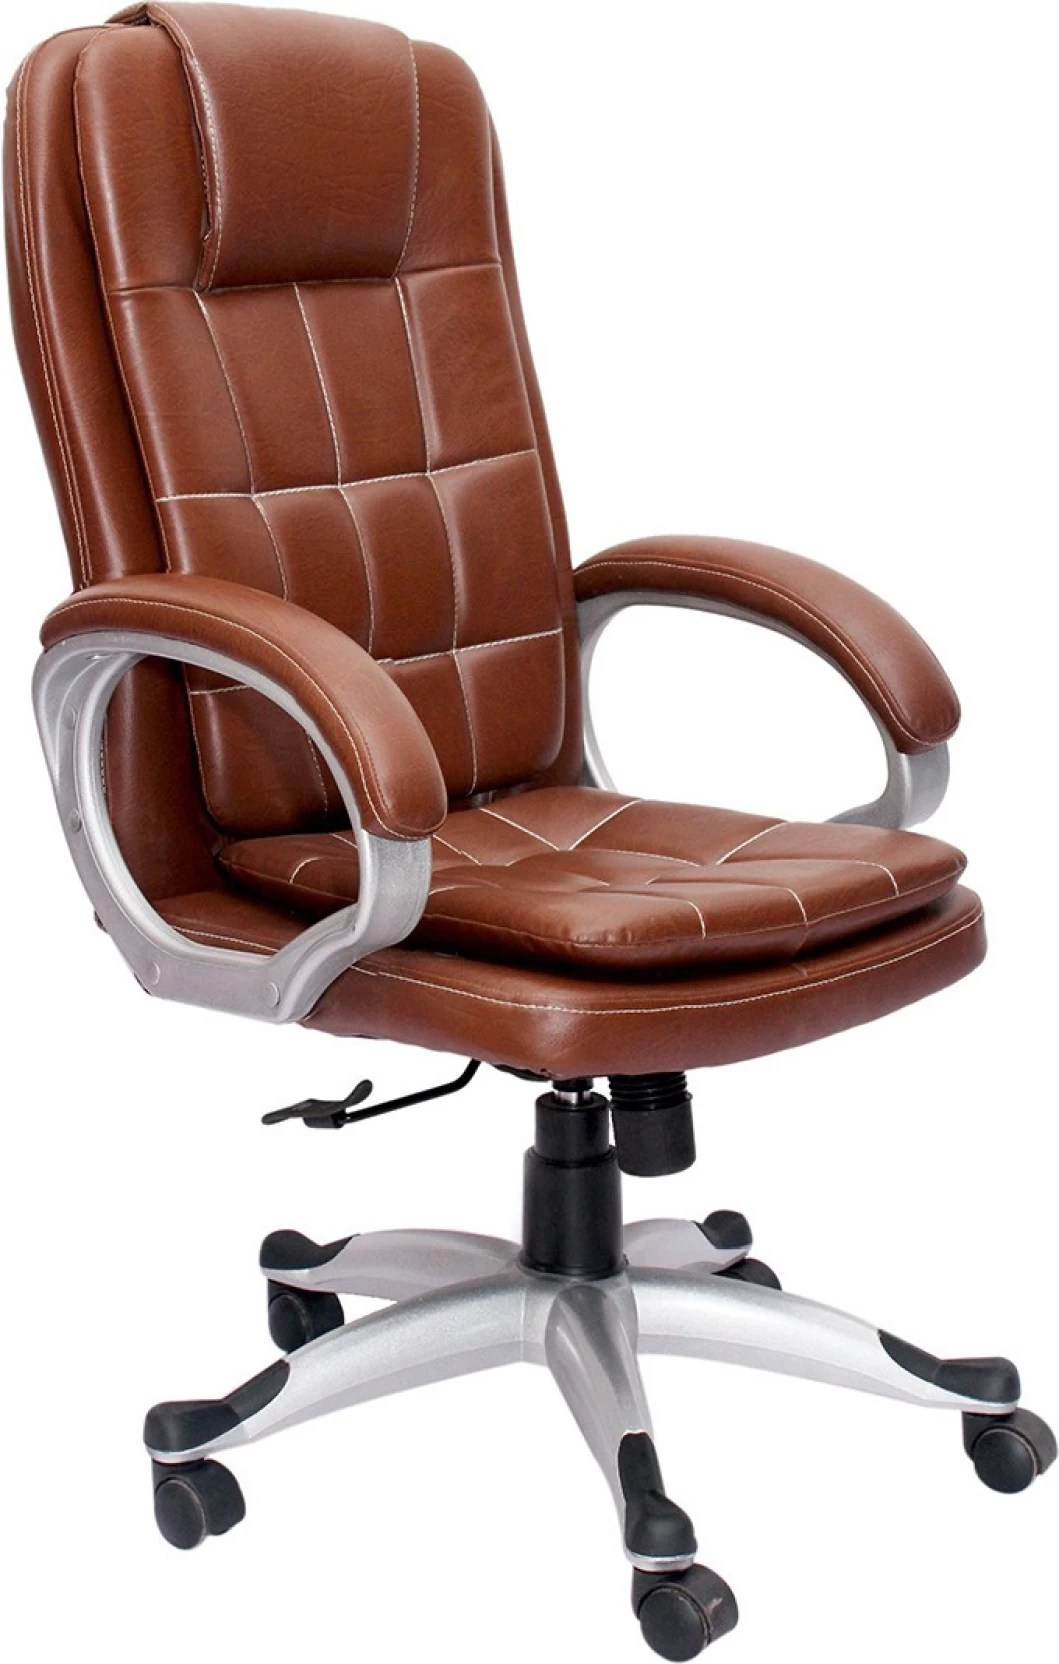 best ergonomic chairs in india kids metal vj interior leatherette office arm chair price